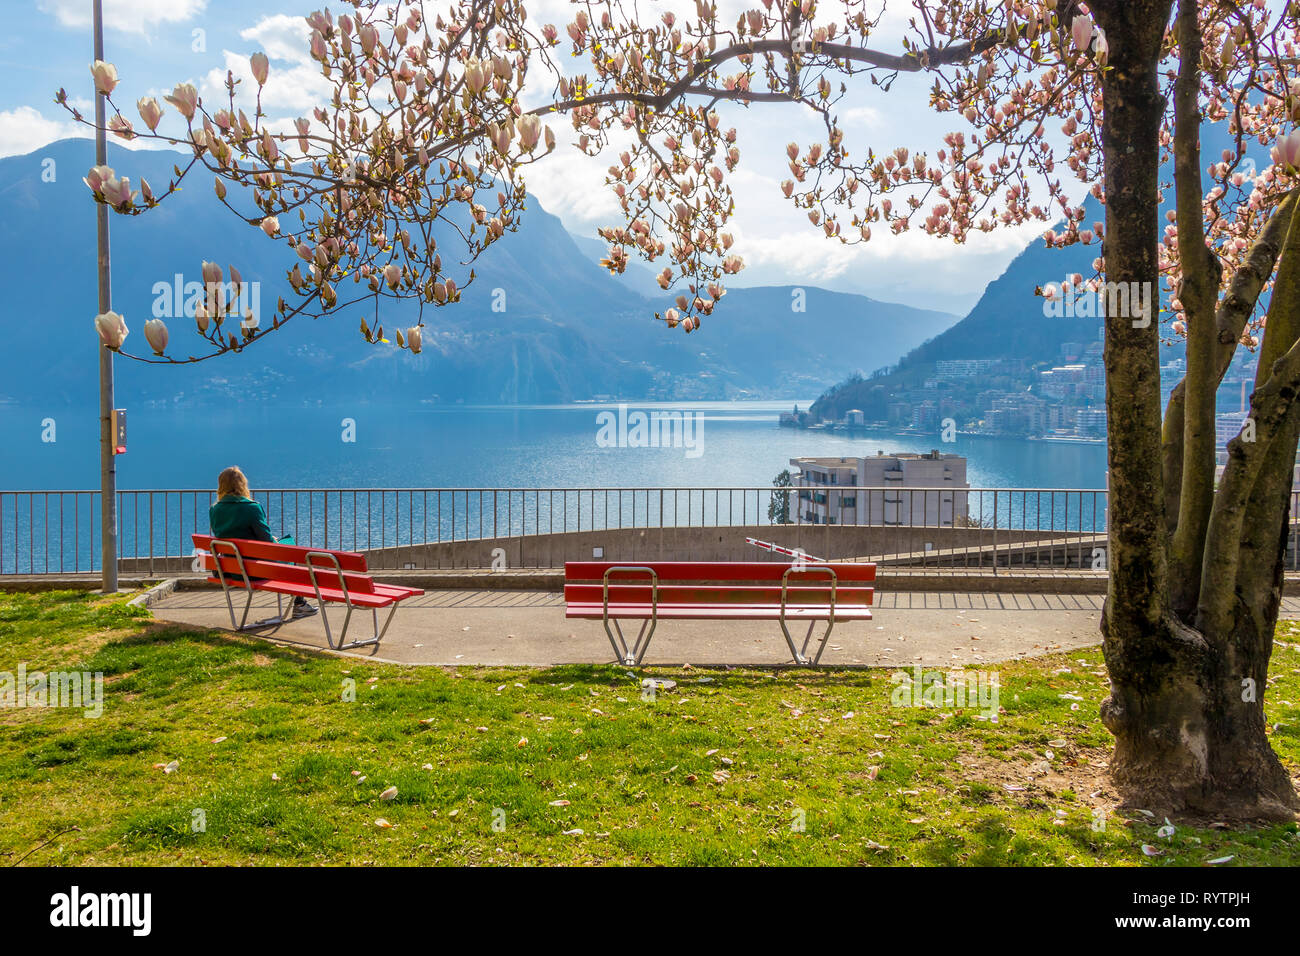 Girl enjoying city view from a bench under the Magnolia tree at the hill in Lugano, view at the Lake Lugano and Alps mountains in Ticino canton of Swi - Stock Image